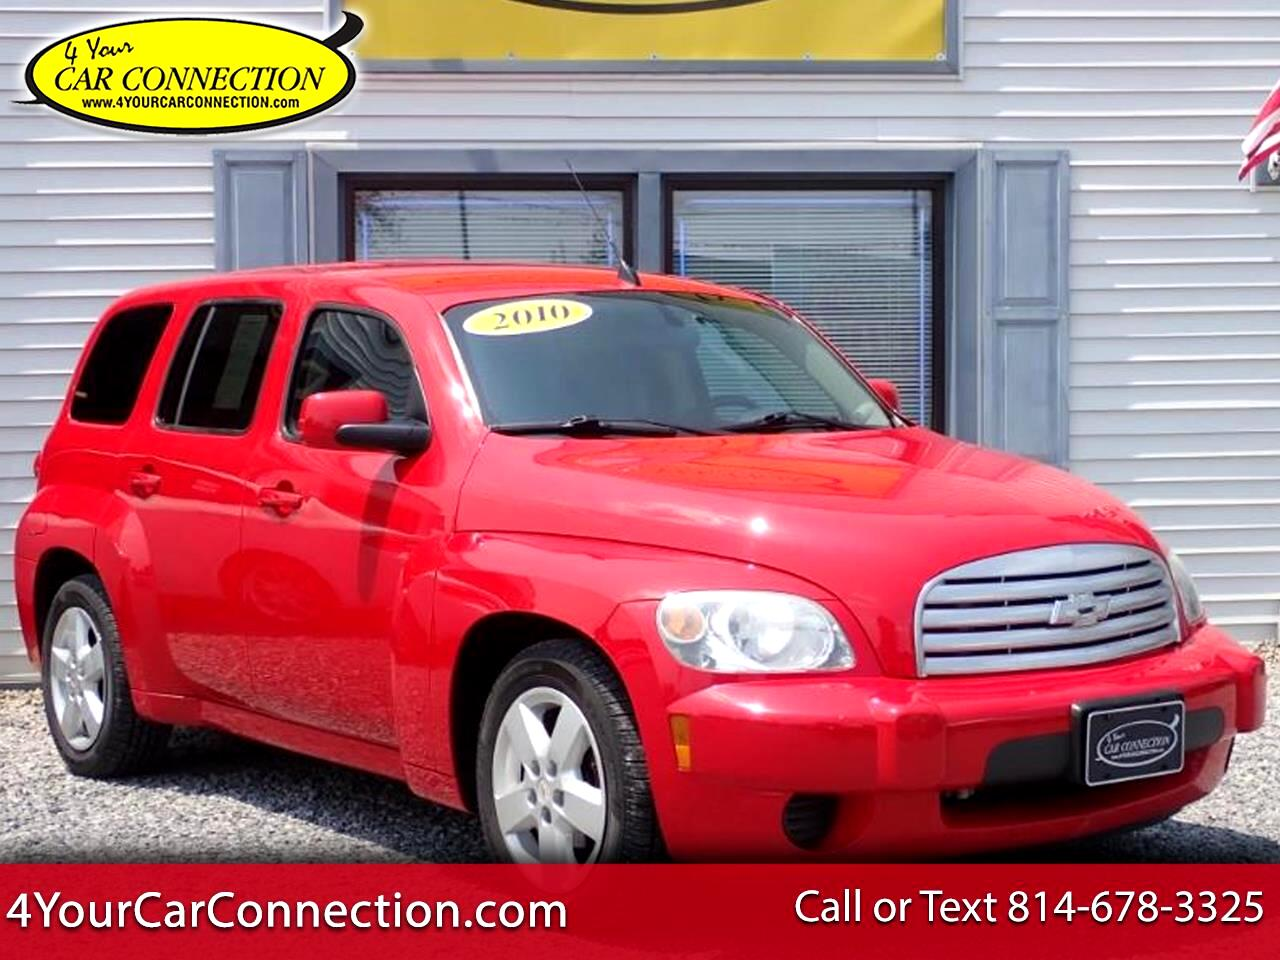 Used 2010 Chevrolet Hhr Lt For Sale In Cranberry Pa 16319 4